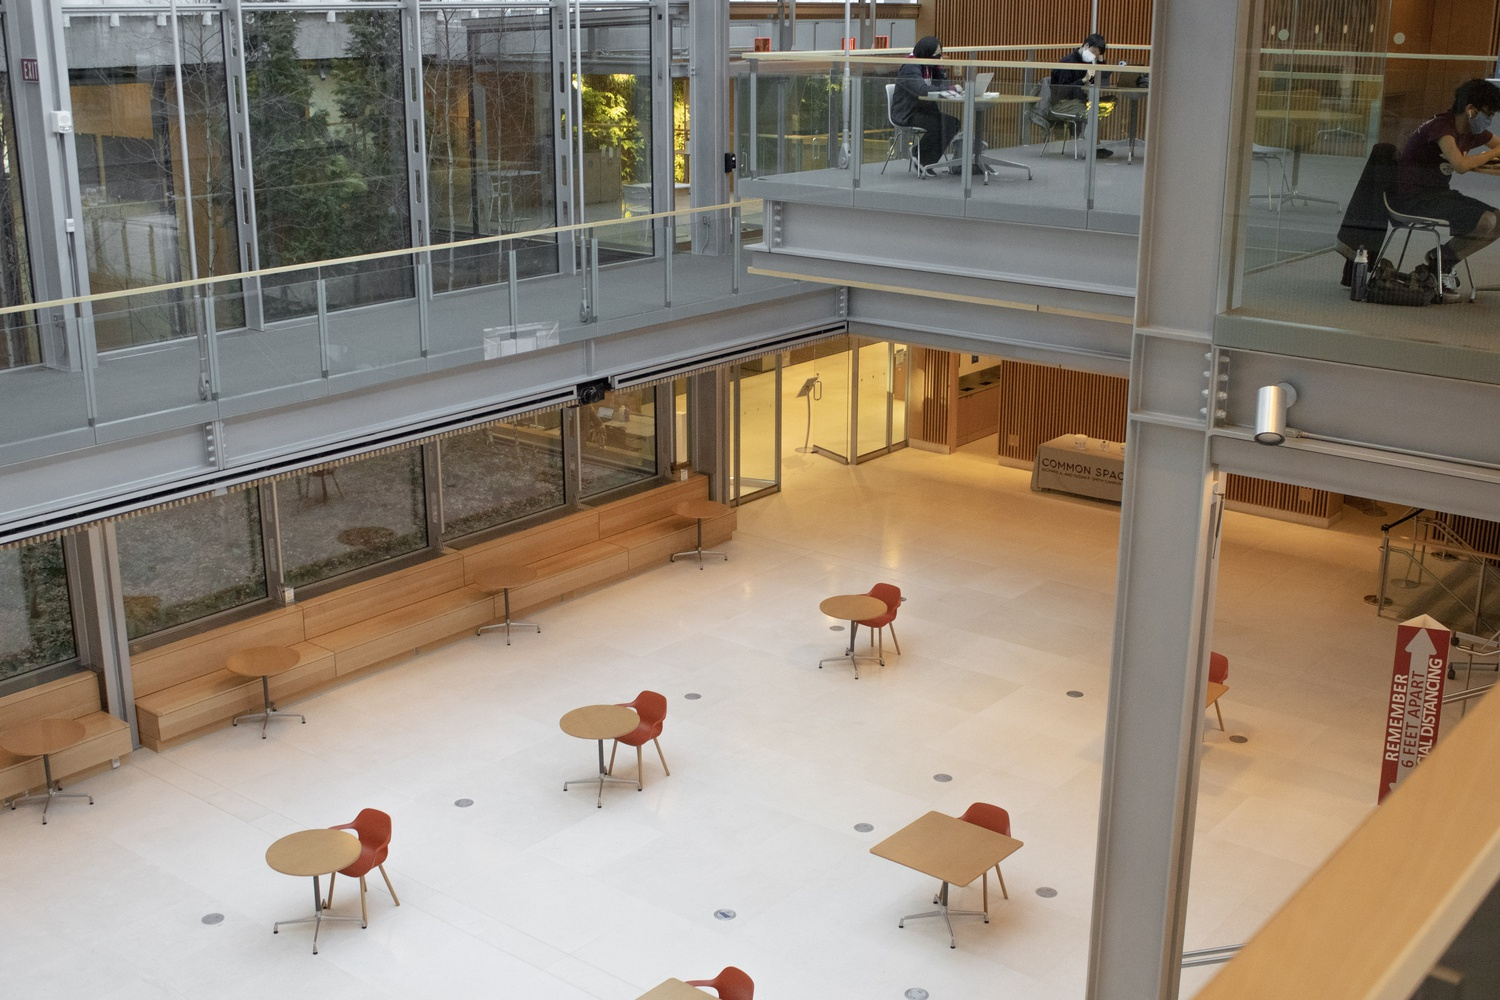 Strict coronavirus restrictions left students who wanted to visit the Smith Campus Center this spring limited to socially distanced tables available by reservation.